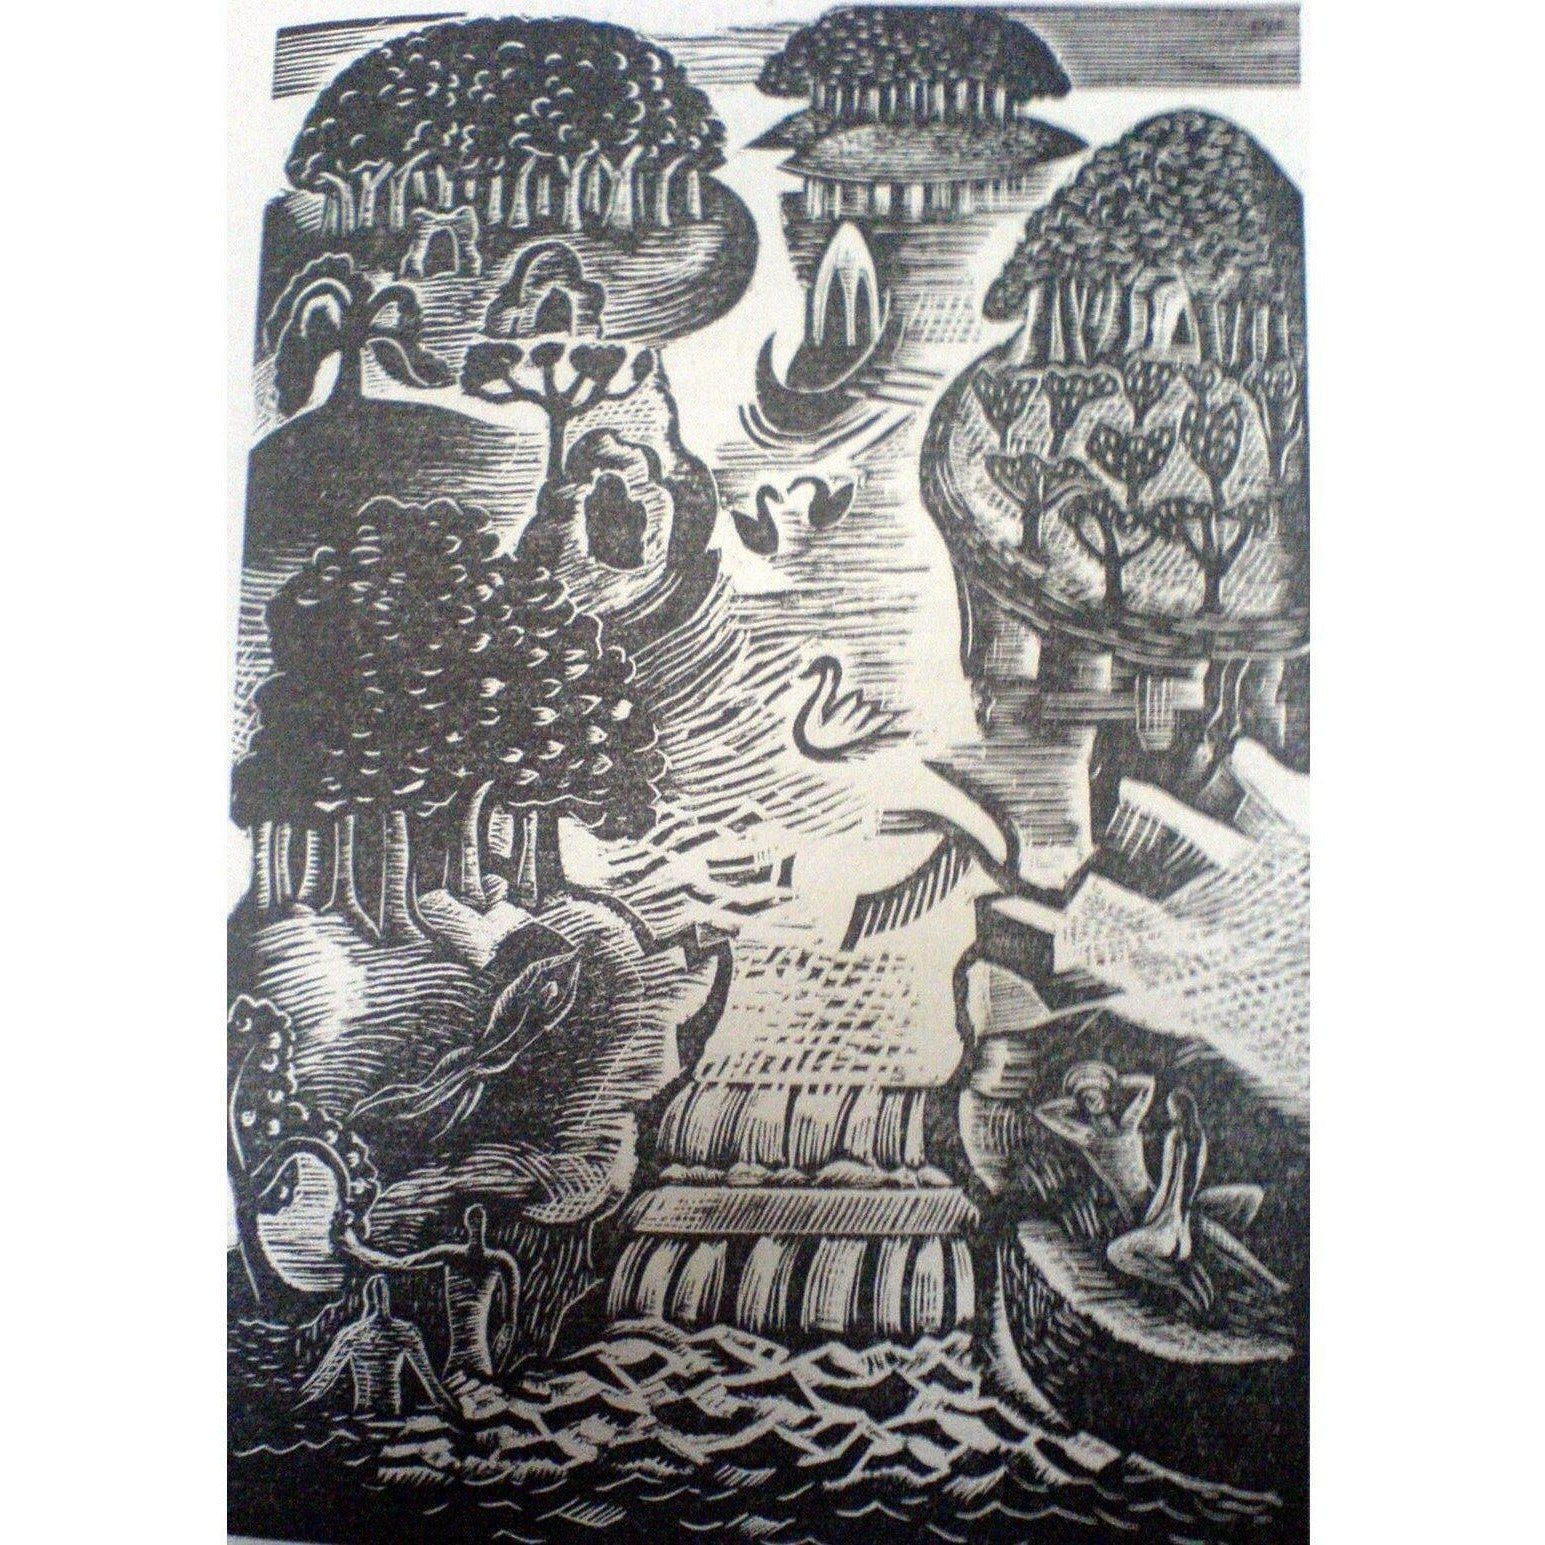 Paul Nash Ltd Ed Woodcut Print - Paradise